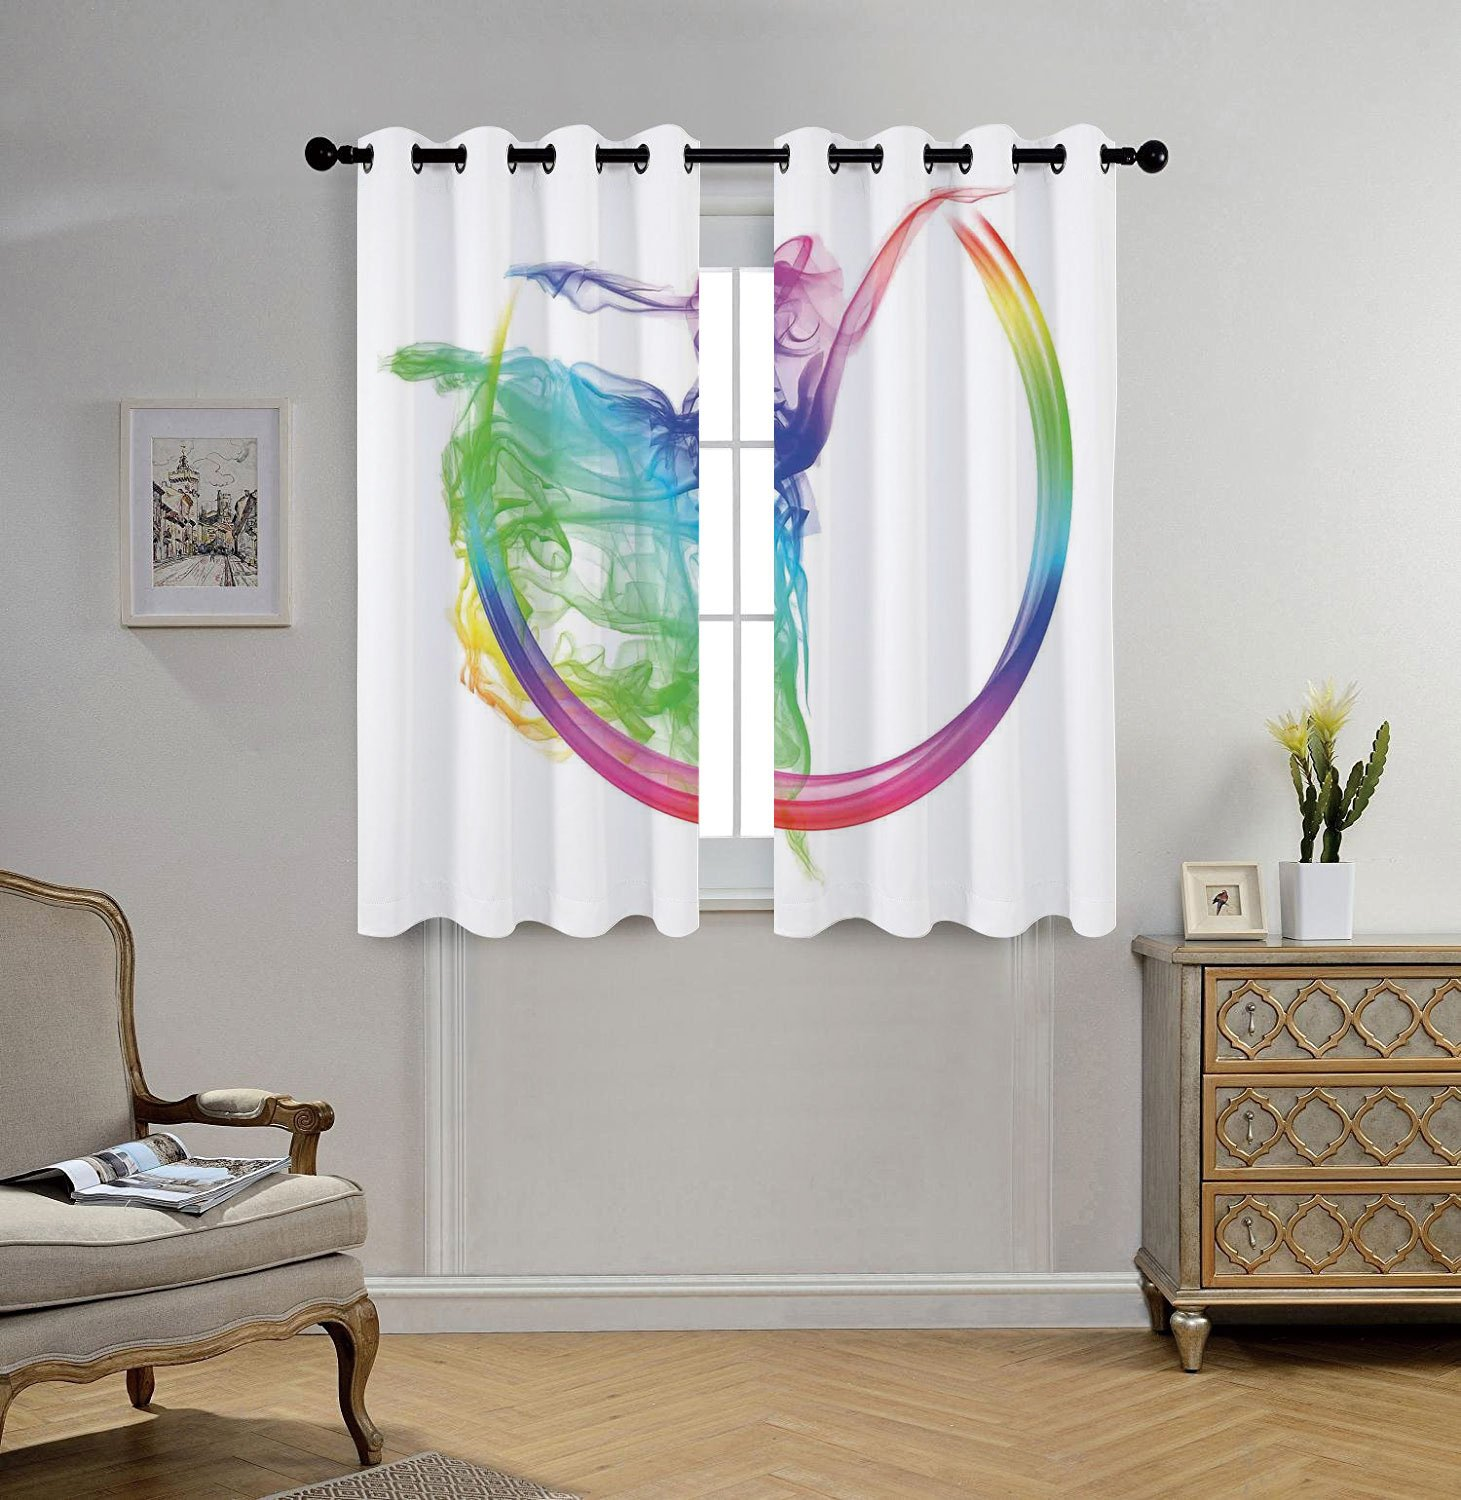 iPrint Stylish Window Curtains,Abstract Home Decor,Smoke Dance Shape Silhouette of Dancer Ballerina Rainbow Colors Fantasy Decorative,2 Panel Set Window Drapes,for Living Room Bedroom Kitchen Cafe